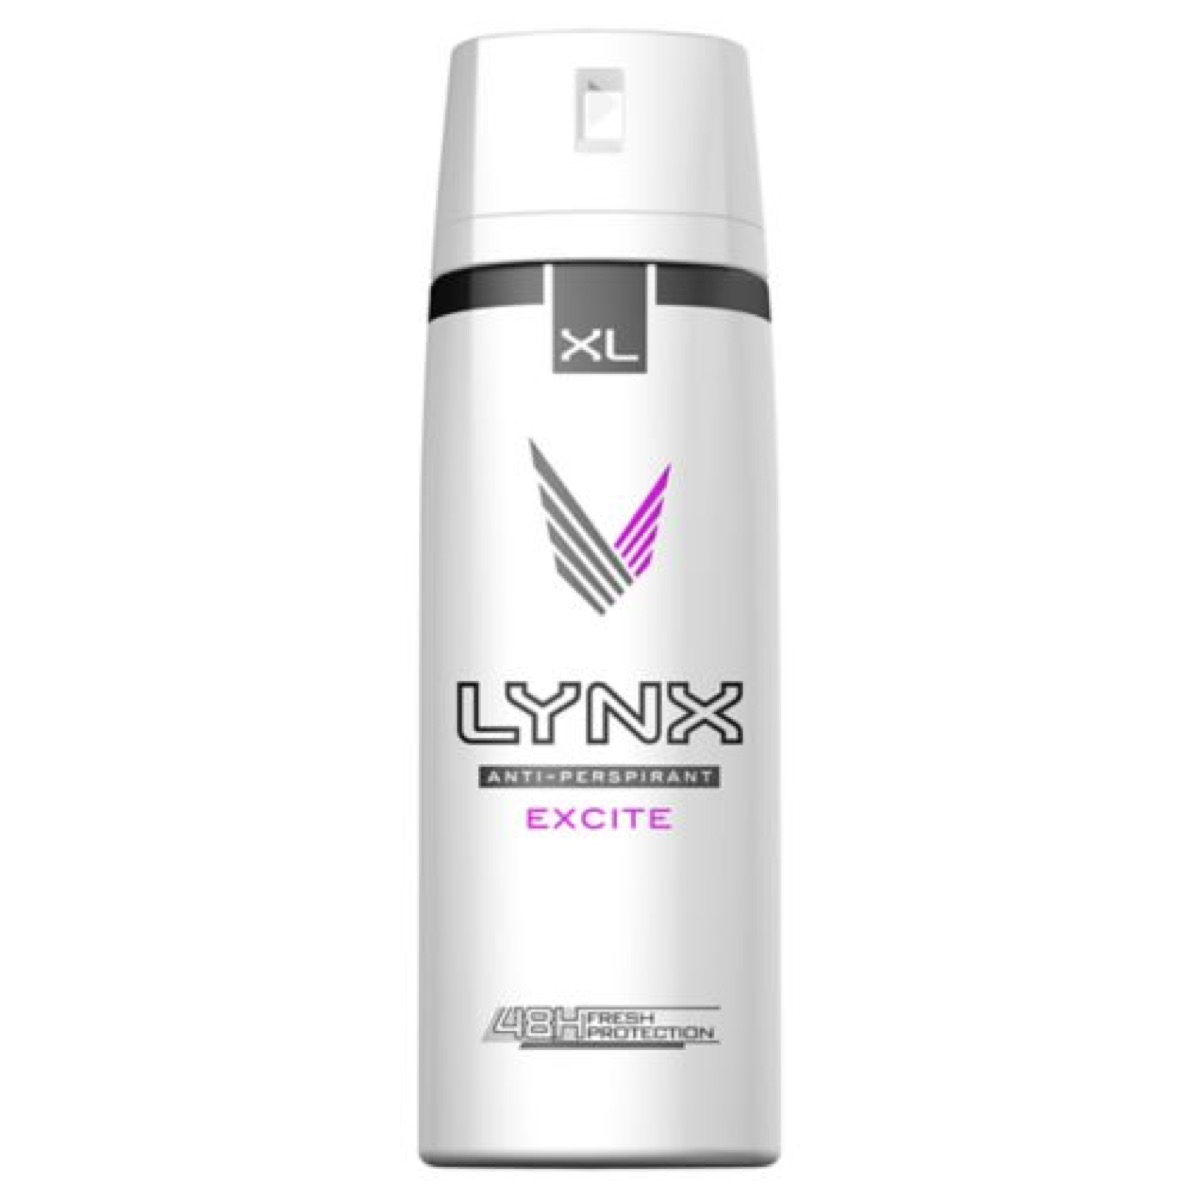 Lynx/Axe {Brands with Different Names Abroad}